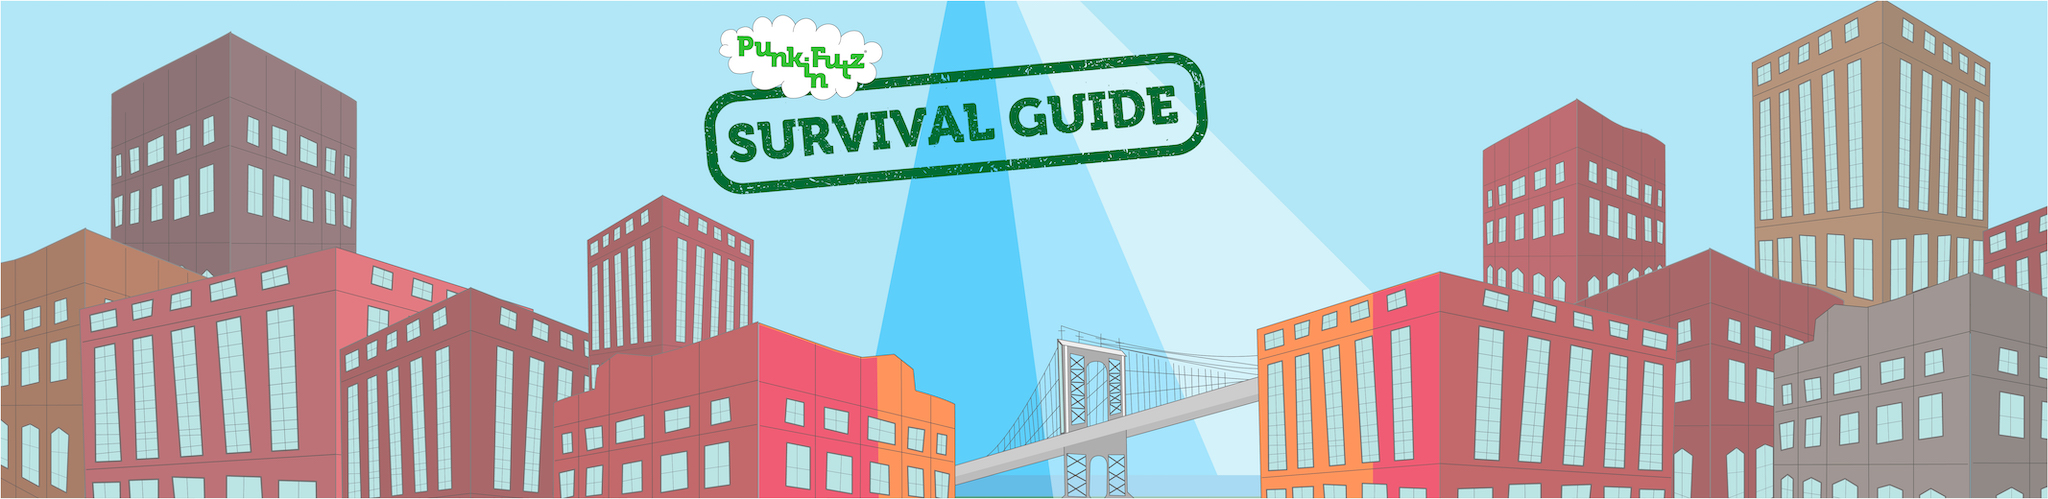 Survival guide sign up